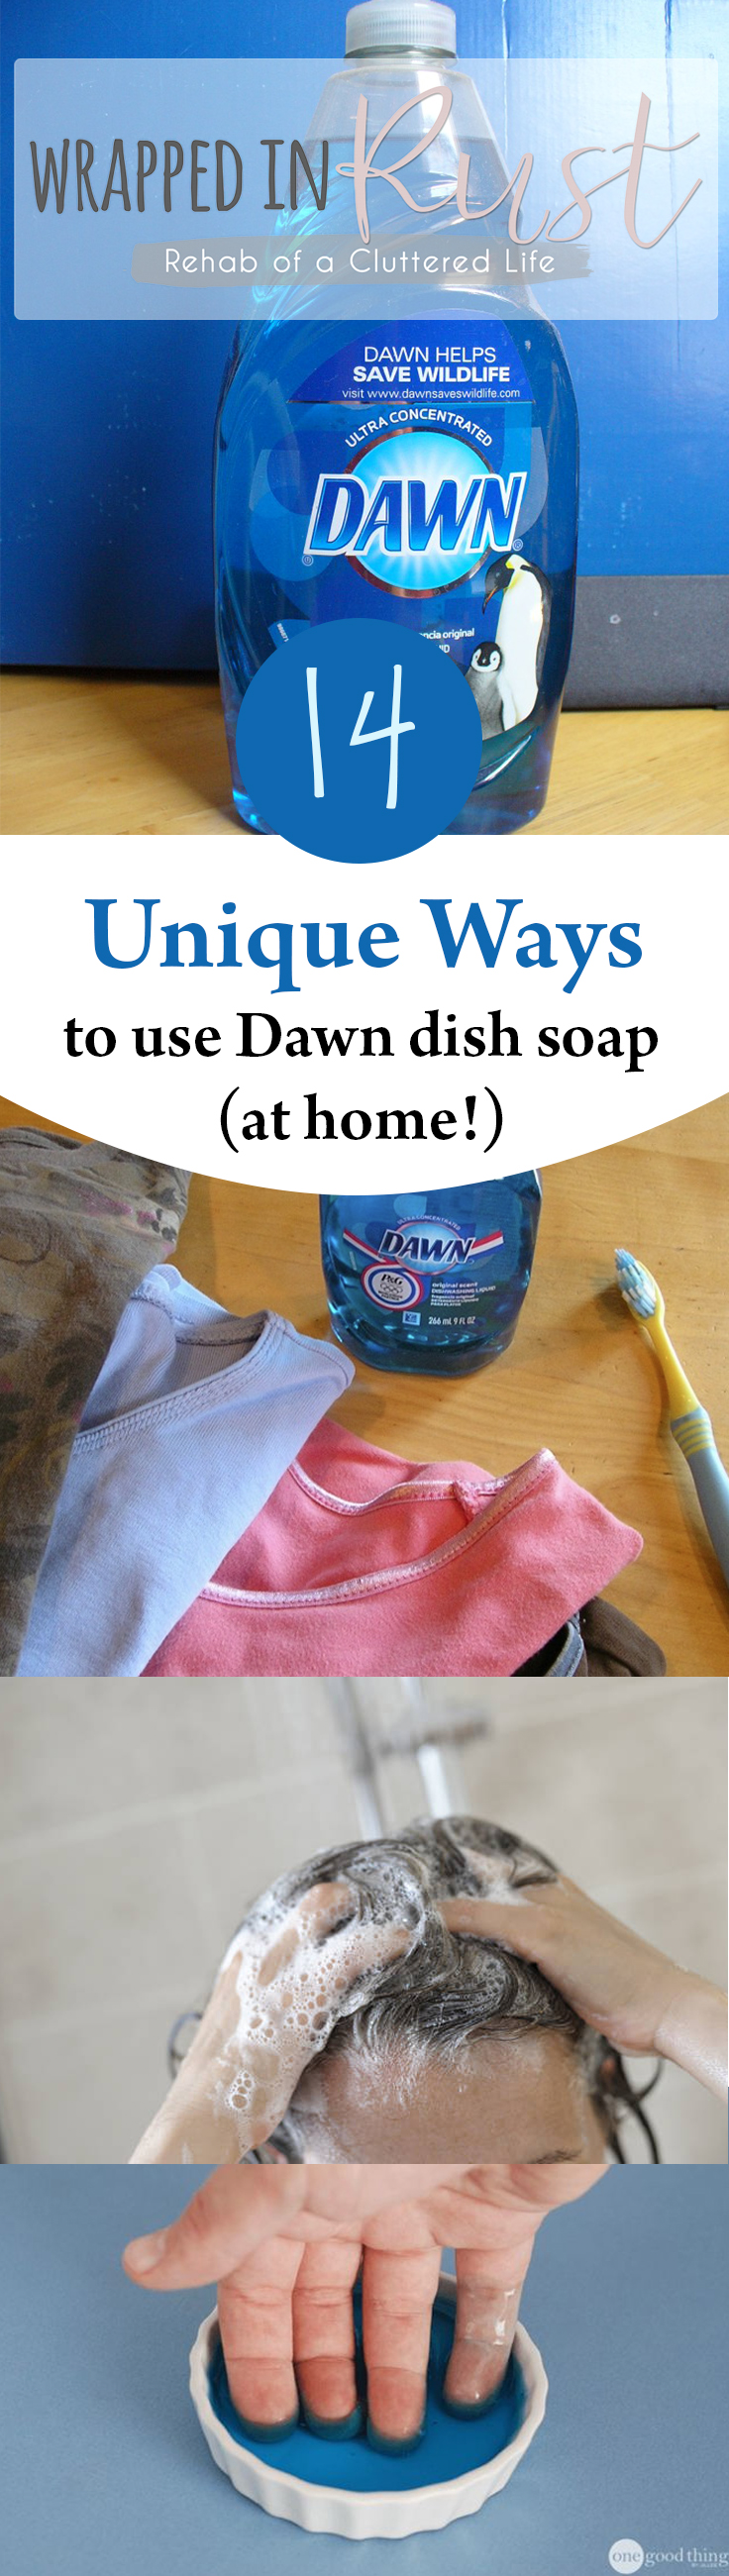 How to Use Dawn Dish Soap, Things to Do With Dawn Dish Soap, Dawn Dish Soap Hacks, Uses for Dawn Dish Soap, Popular Pin, Dawn Dish Soap Around The House, Life Hacks, Easy Life Hacks, Simple Life Hacks.